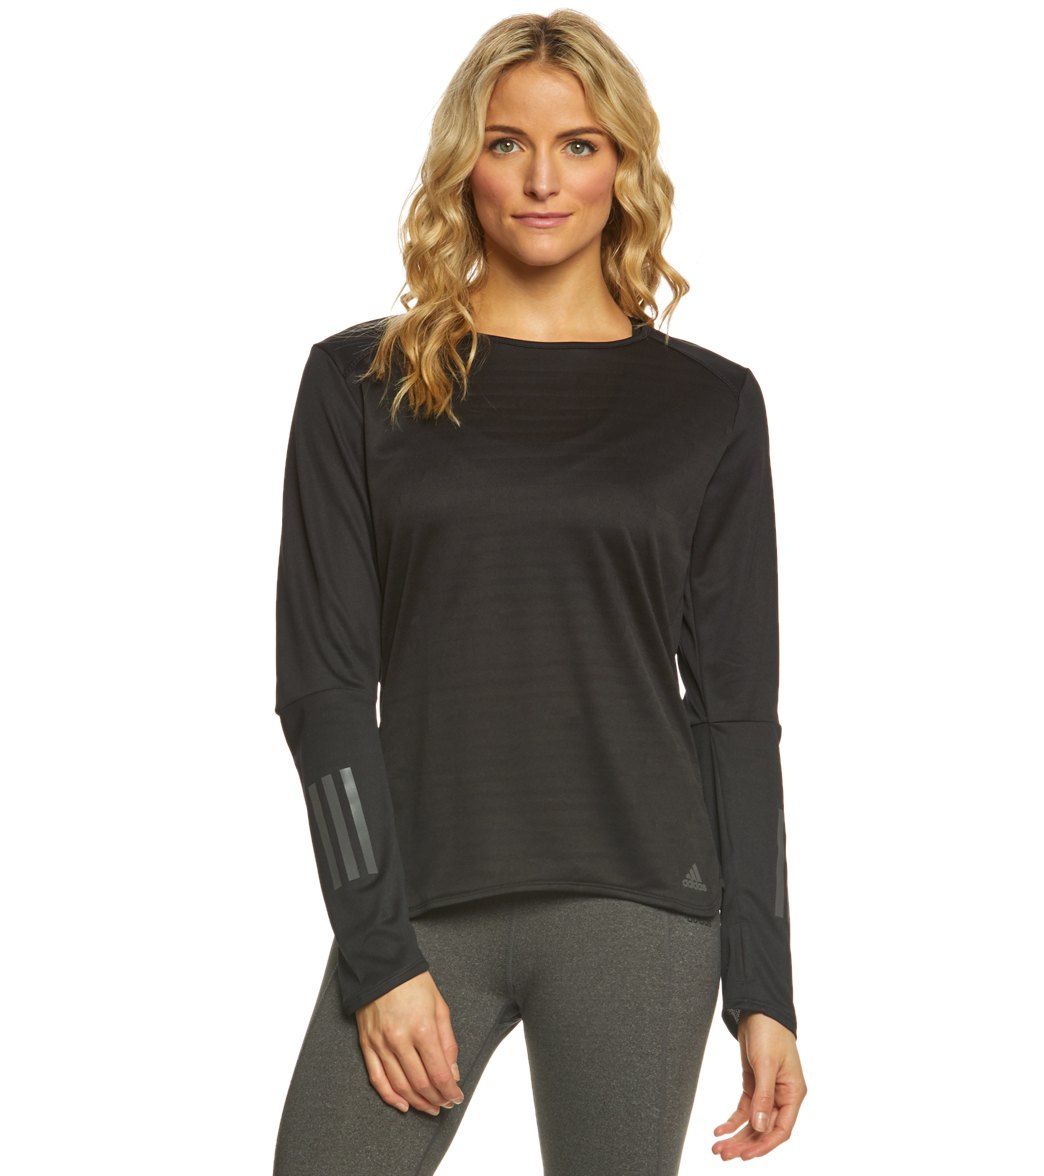 Adidas Outdoor Women's Response Long Sleeve Tee Shirt - Black Xl Polyester - Swimoutlet.com